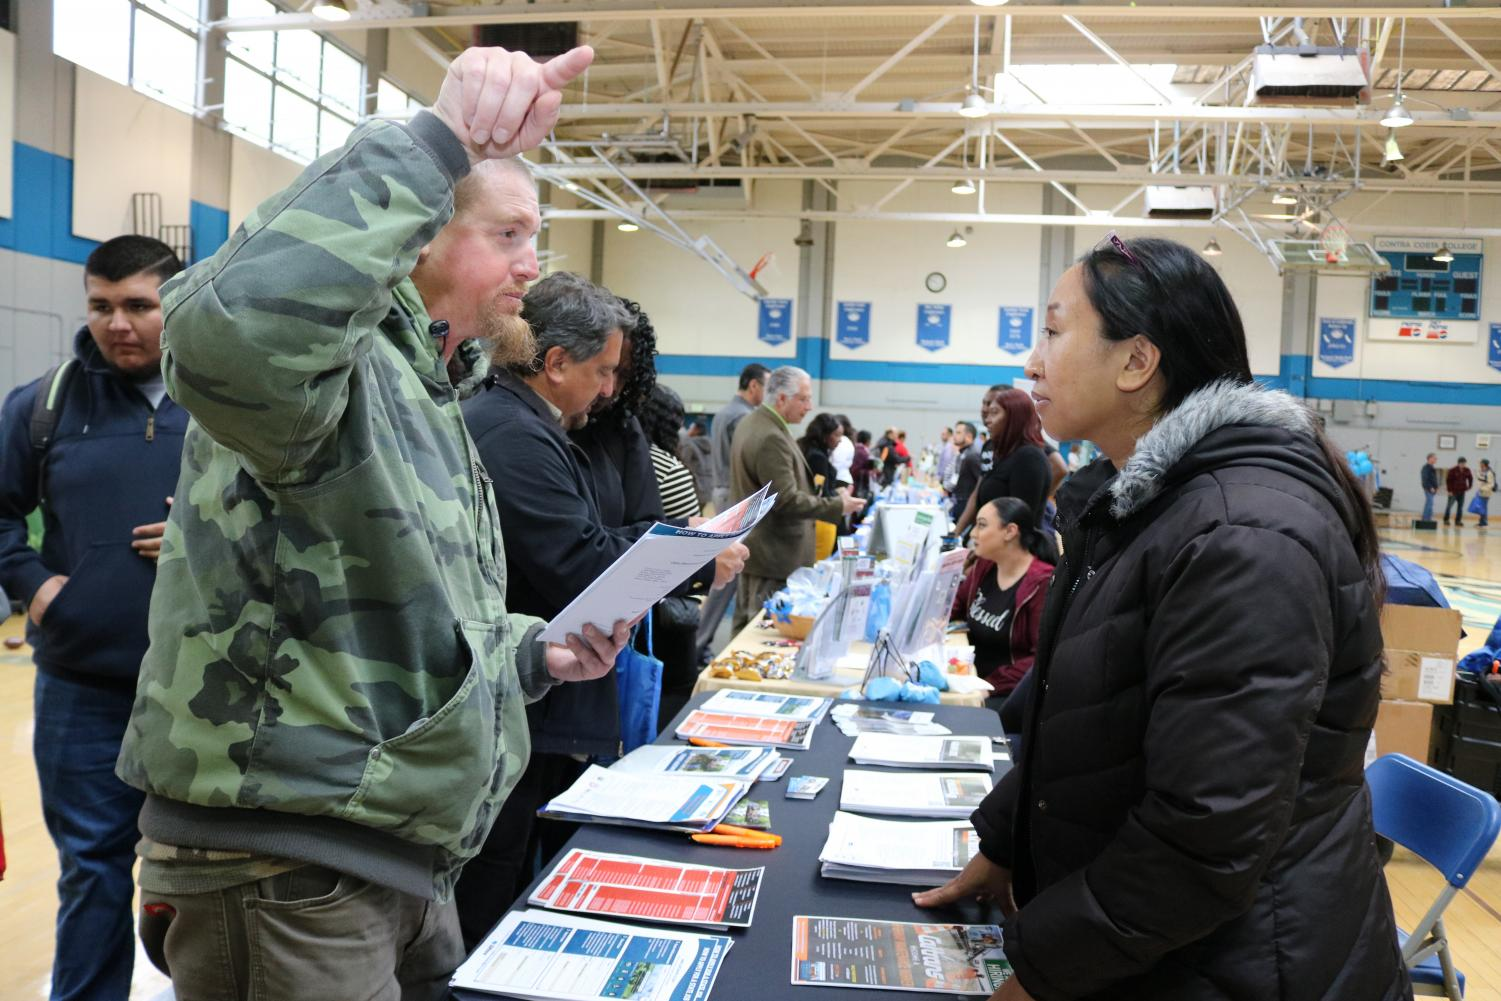 A student (left) talks to CalTrans representative, who refused to give her name, during the West Contra Costa County job fair on March 20 in the Gymnasium. More than 50 employers and 20 resource tables were available for students to explore.